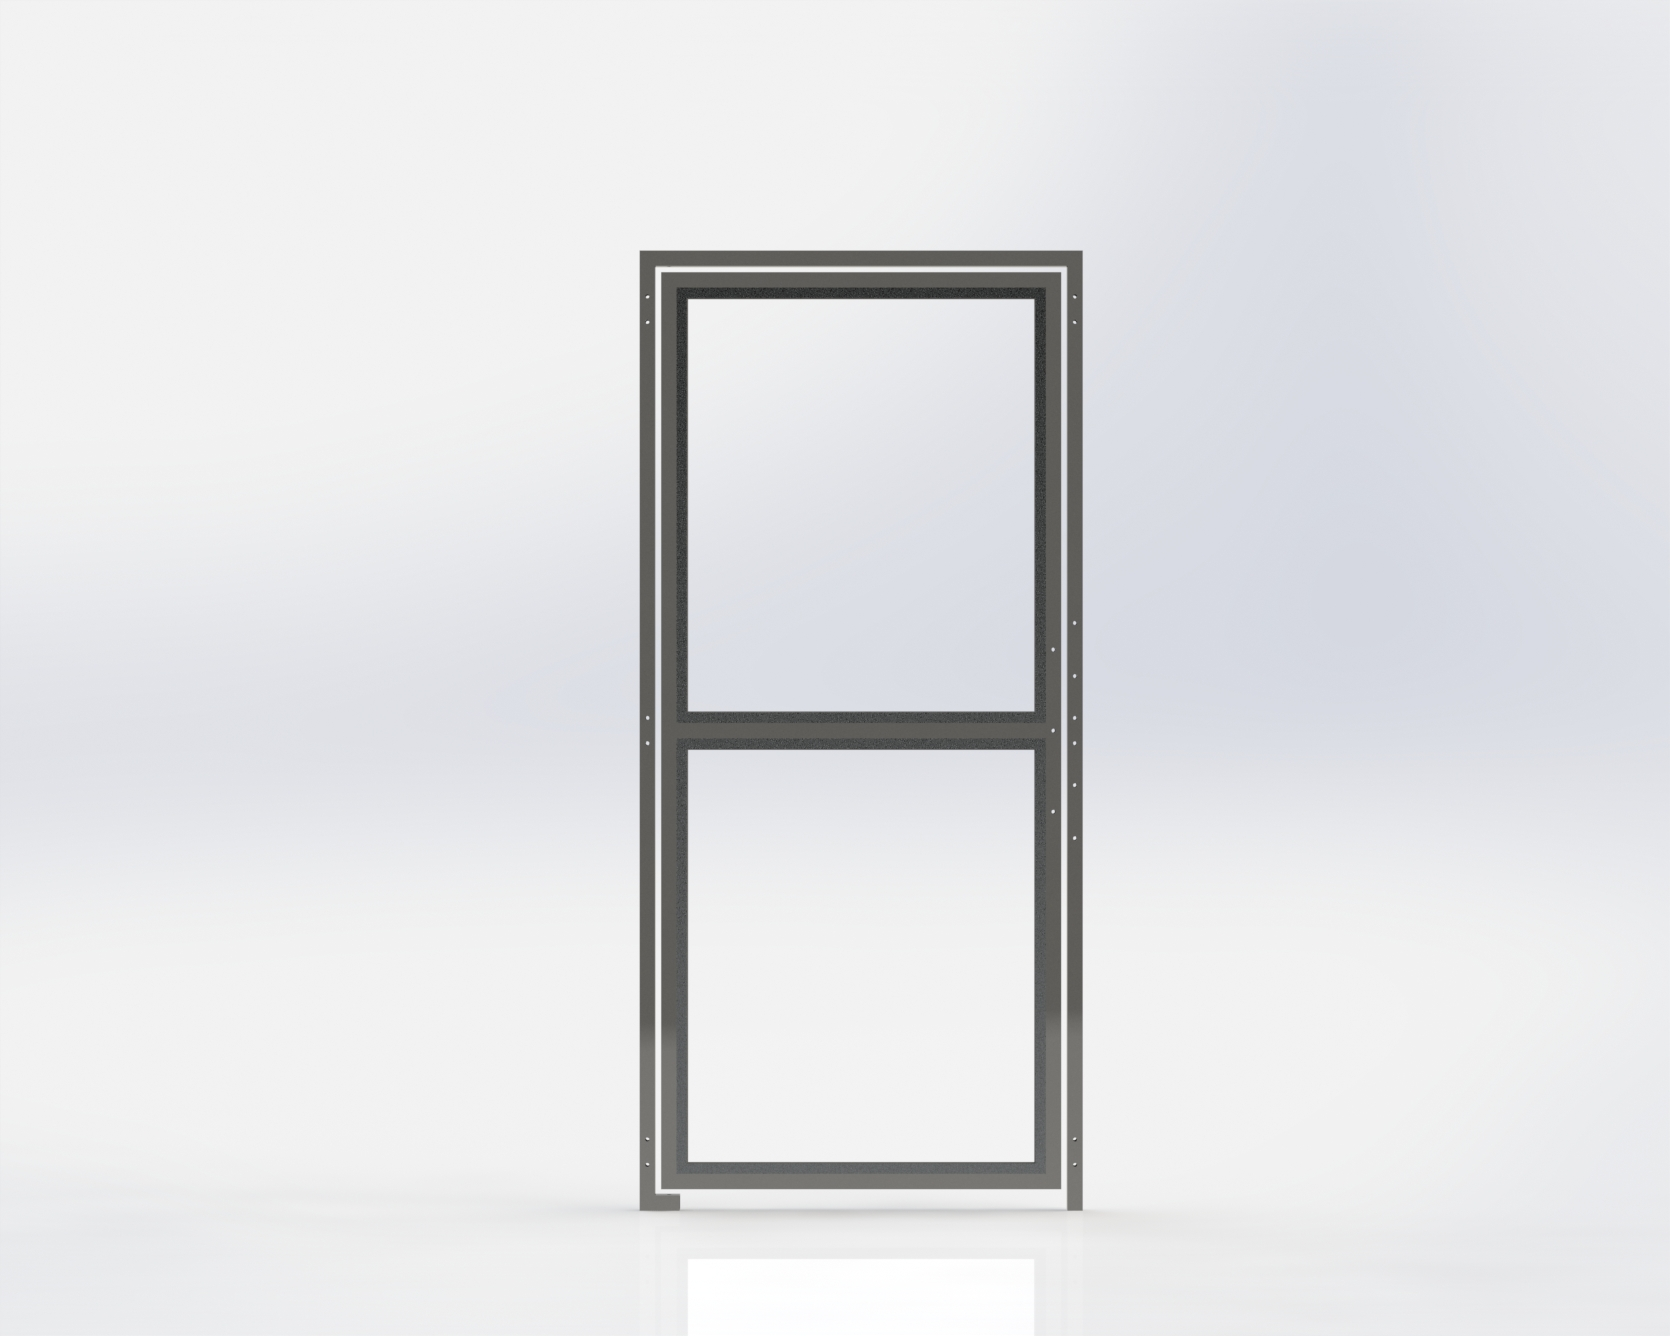 Run Gate,All Glass,762mm Wide x1981.2mm High,Right Hand